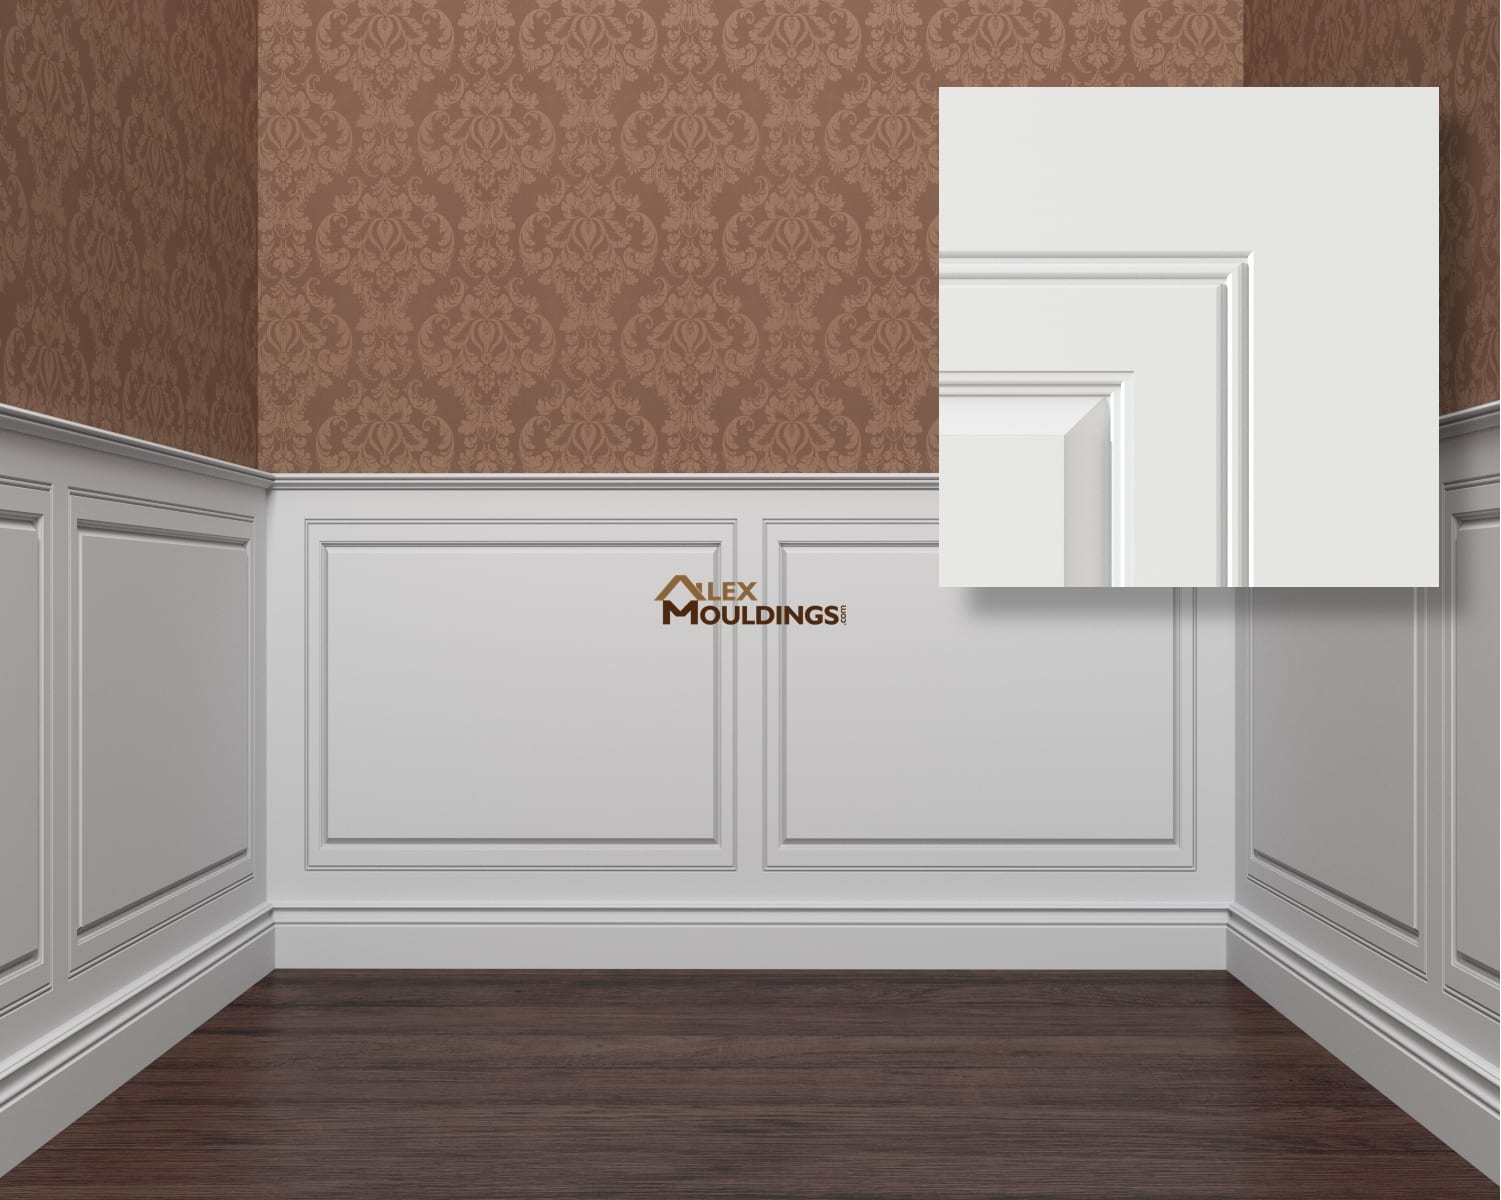 Raised panel 1 framed 2 wainscoting